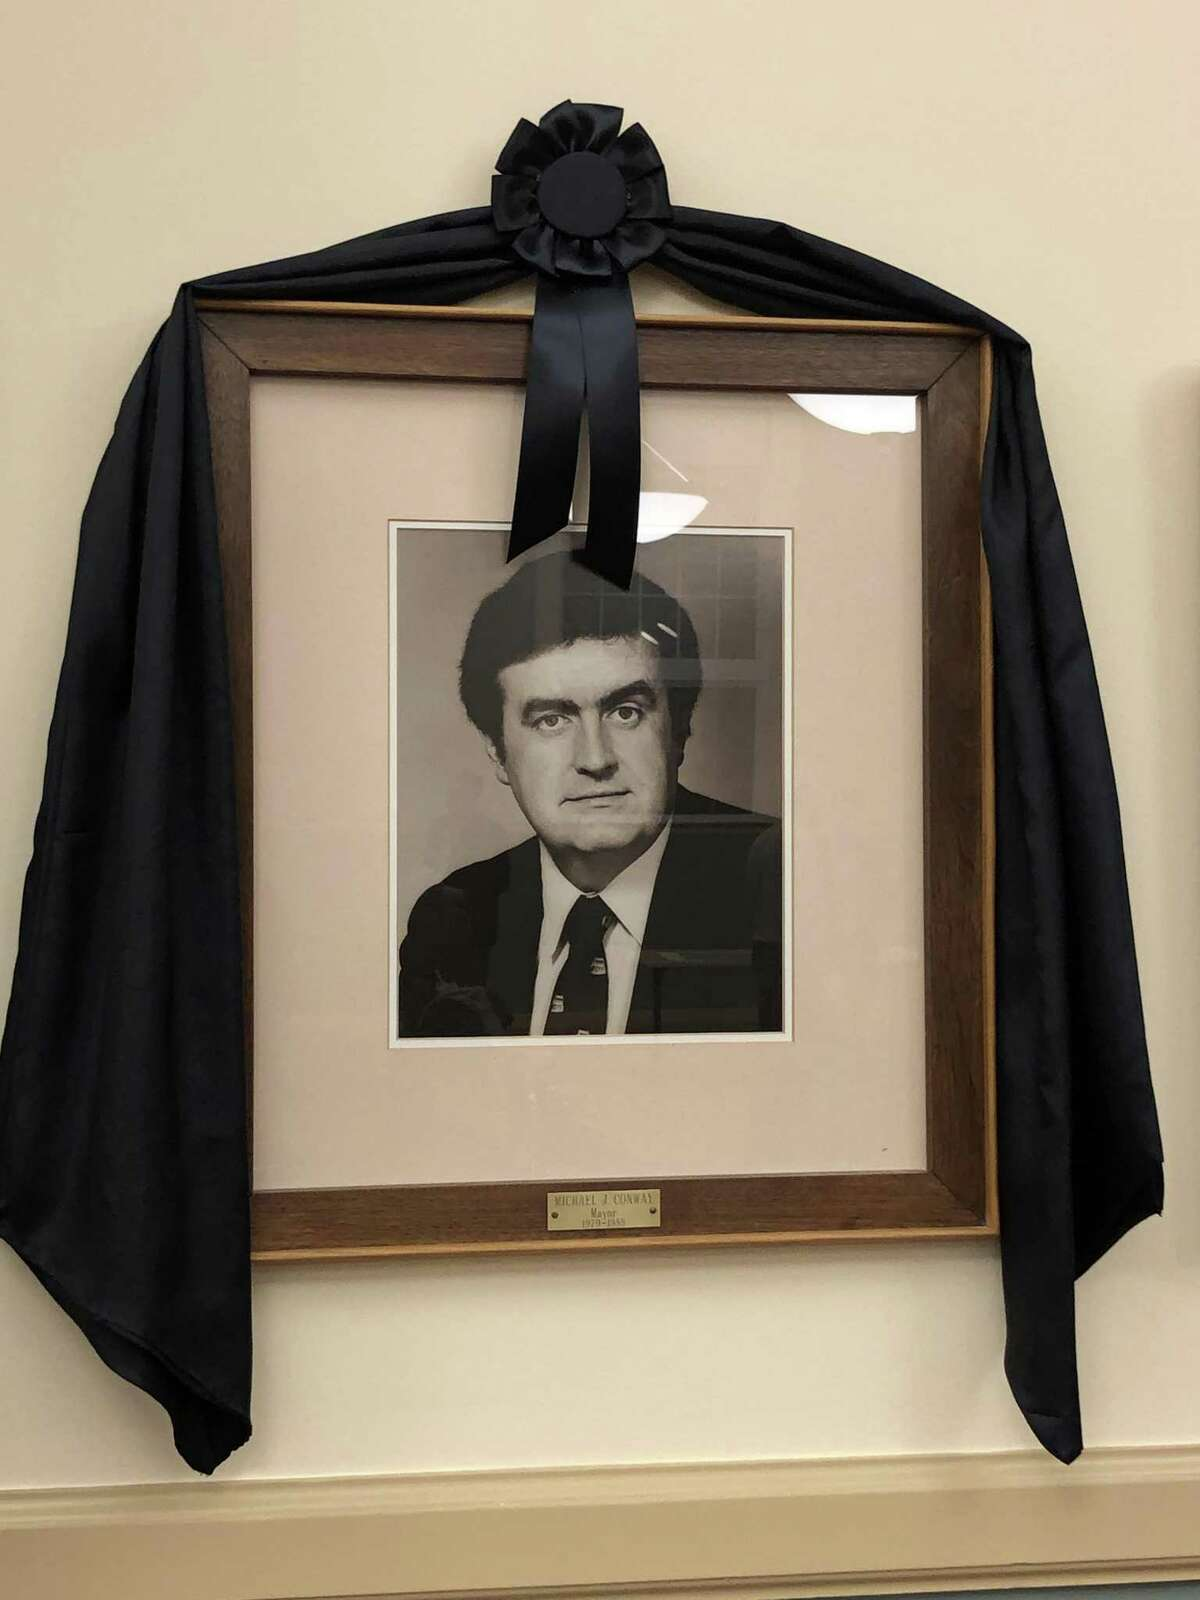 A portrait of former Mayor Michael J. Conway Jr., draped with memorial bunting, is displayed in the City Hall Auditorium.